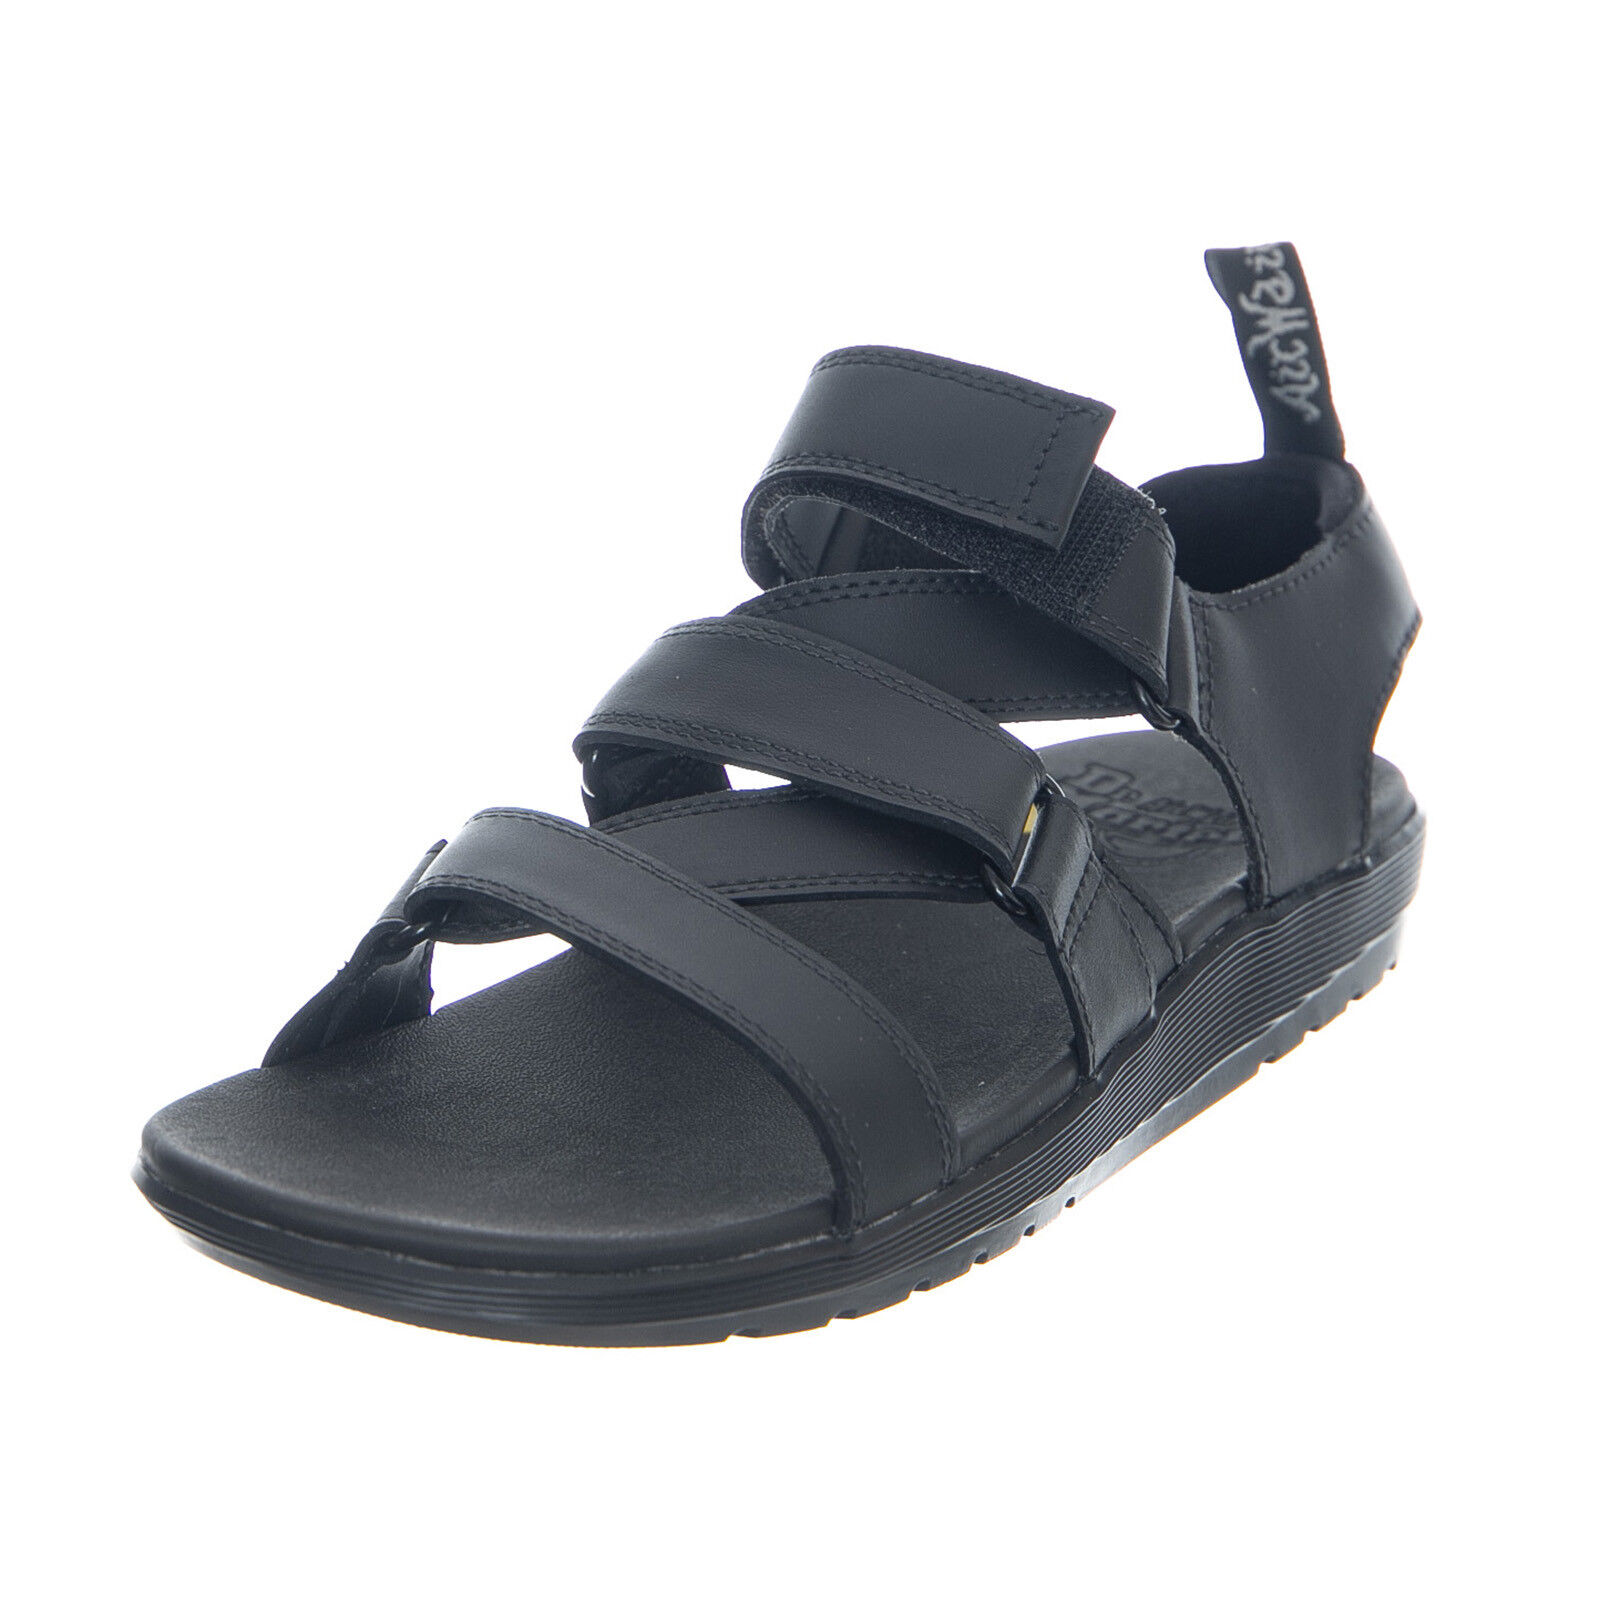 Dr.Martens At Redfin Black Hydro Leather - Women's Sandals Black